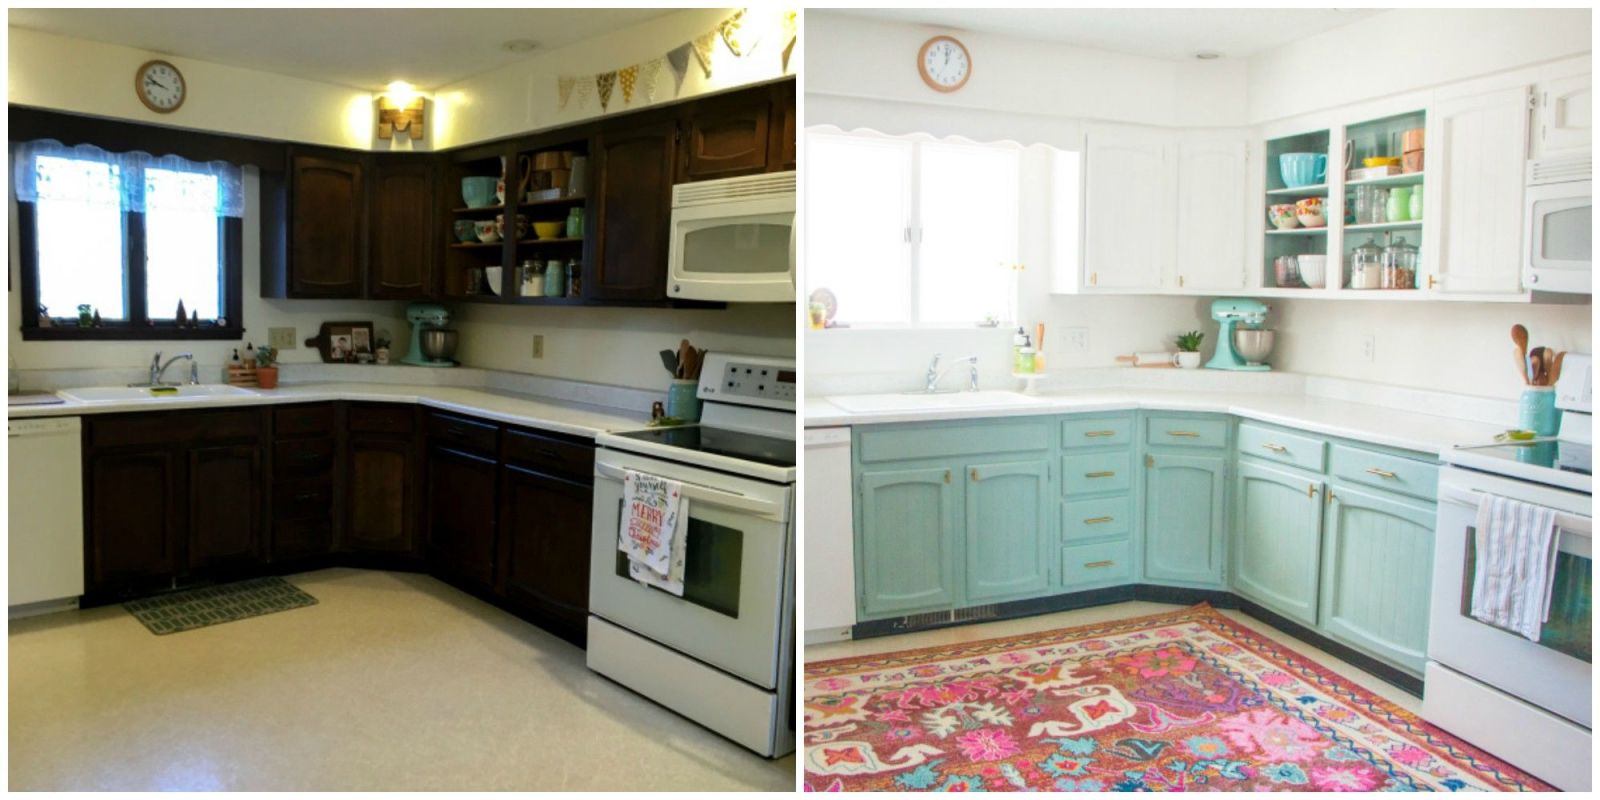 This Bright And Cheery Kitchen Renovation Cost Just 250